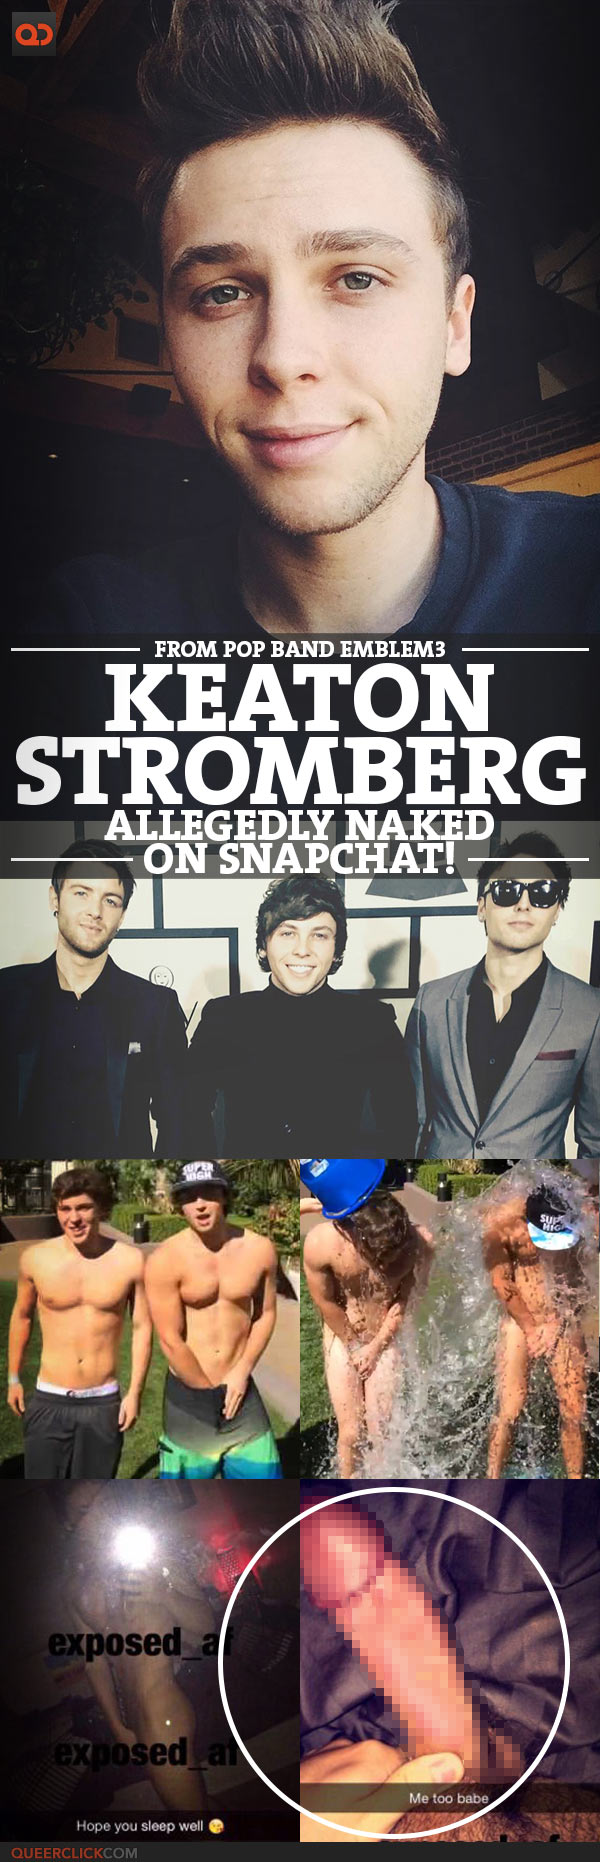 Keaton Stromberg, From Pop Band Emblem3, Allegedly Naked On Snapchat!